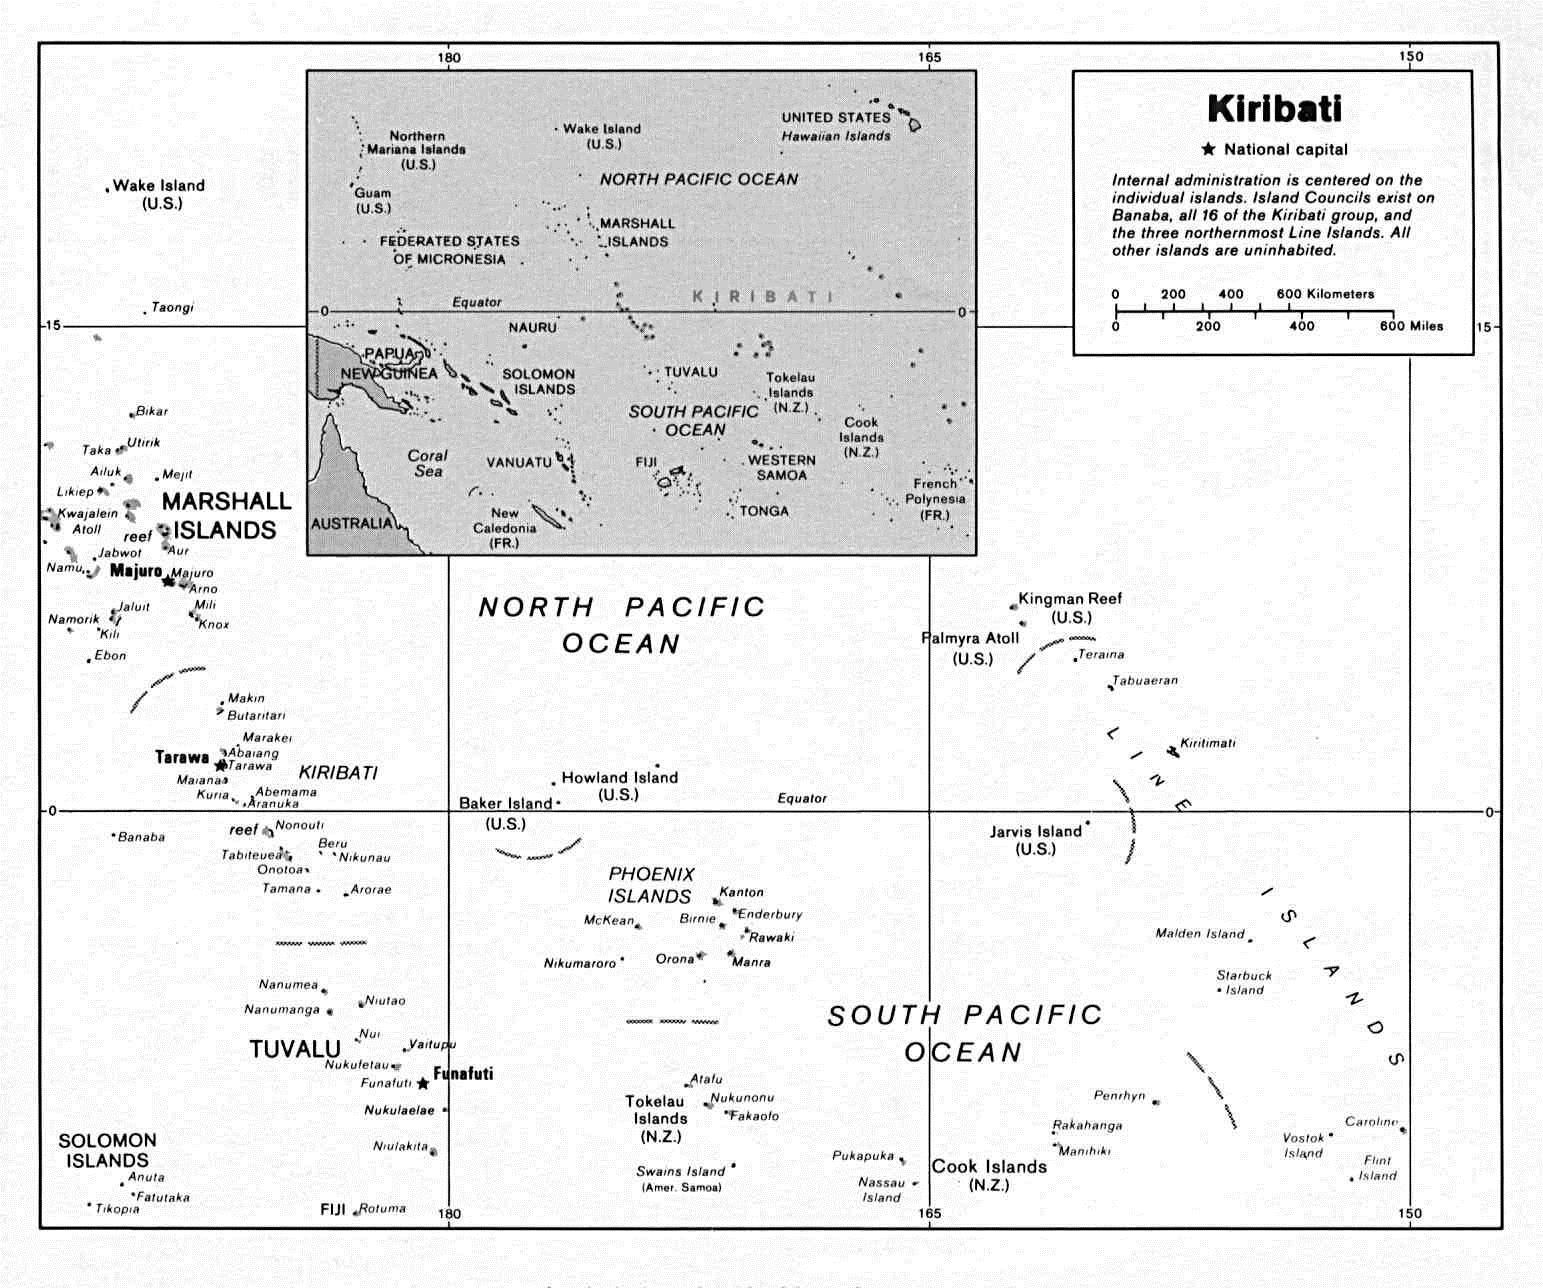 Kiribati (Political) U.S. Department of State 1994